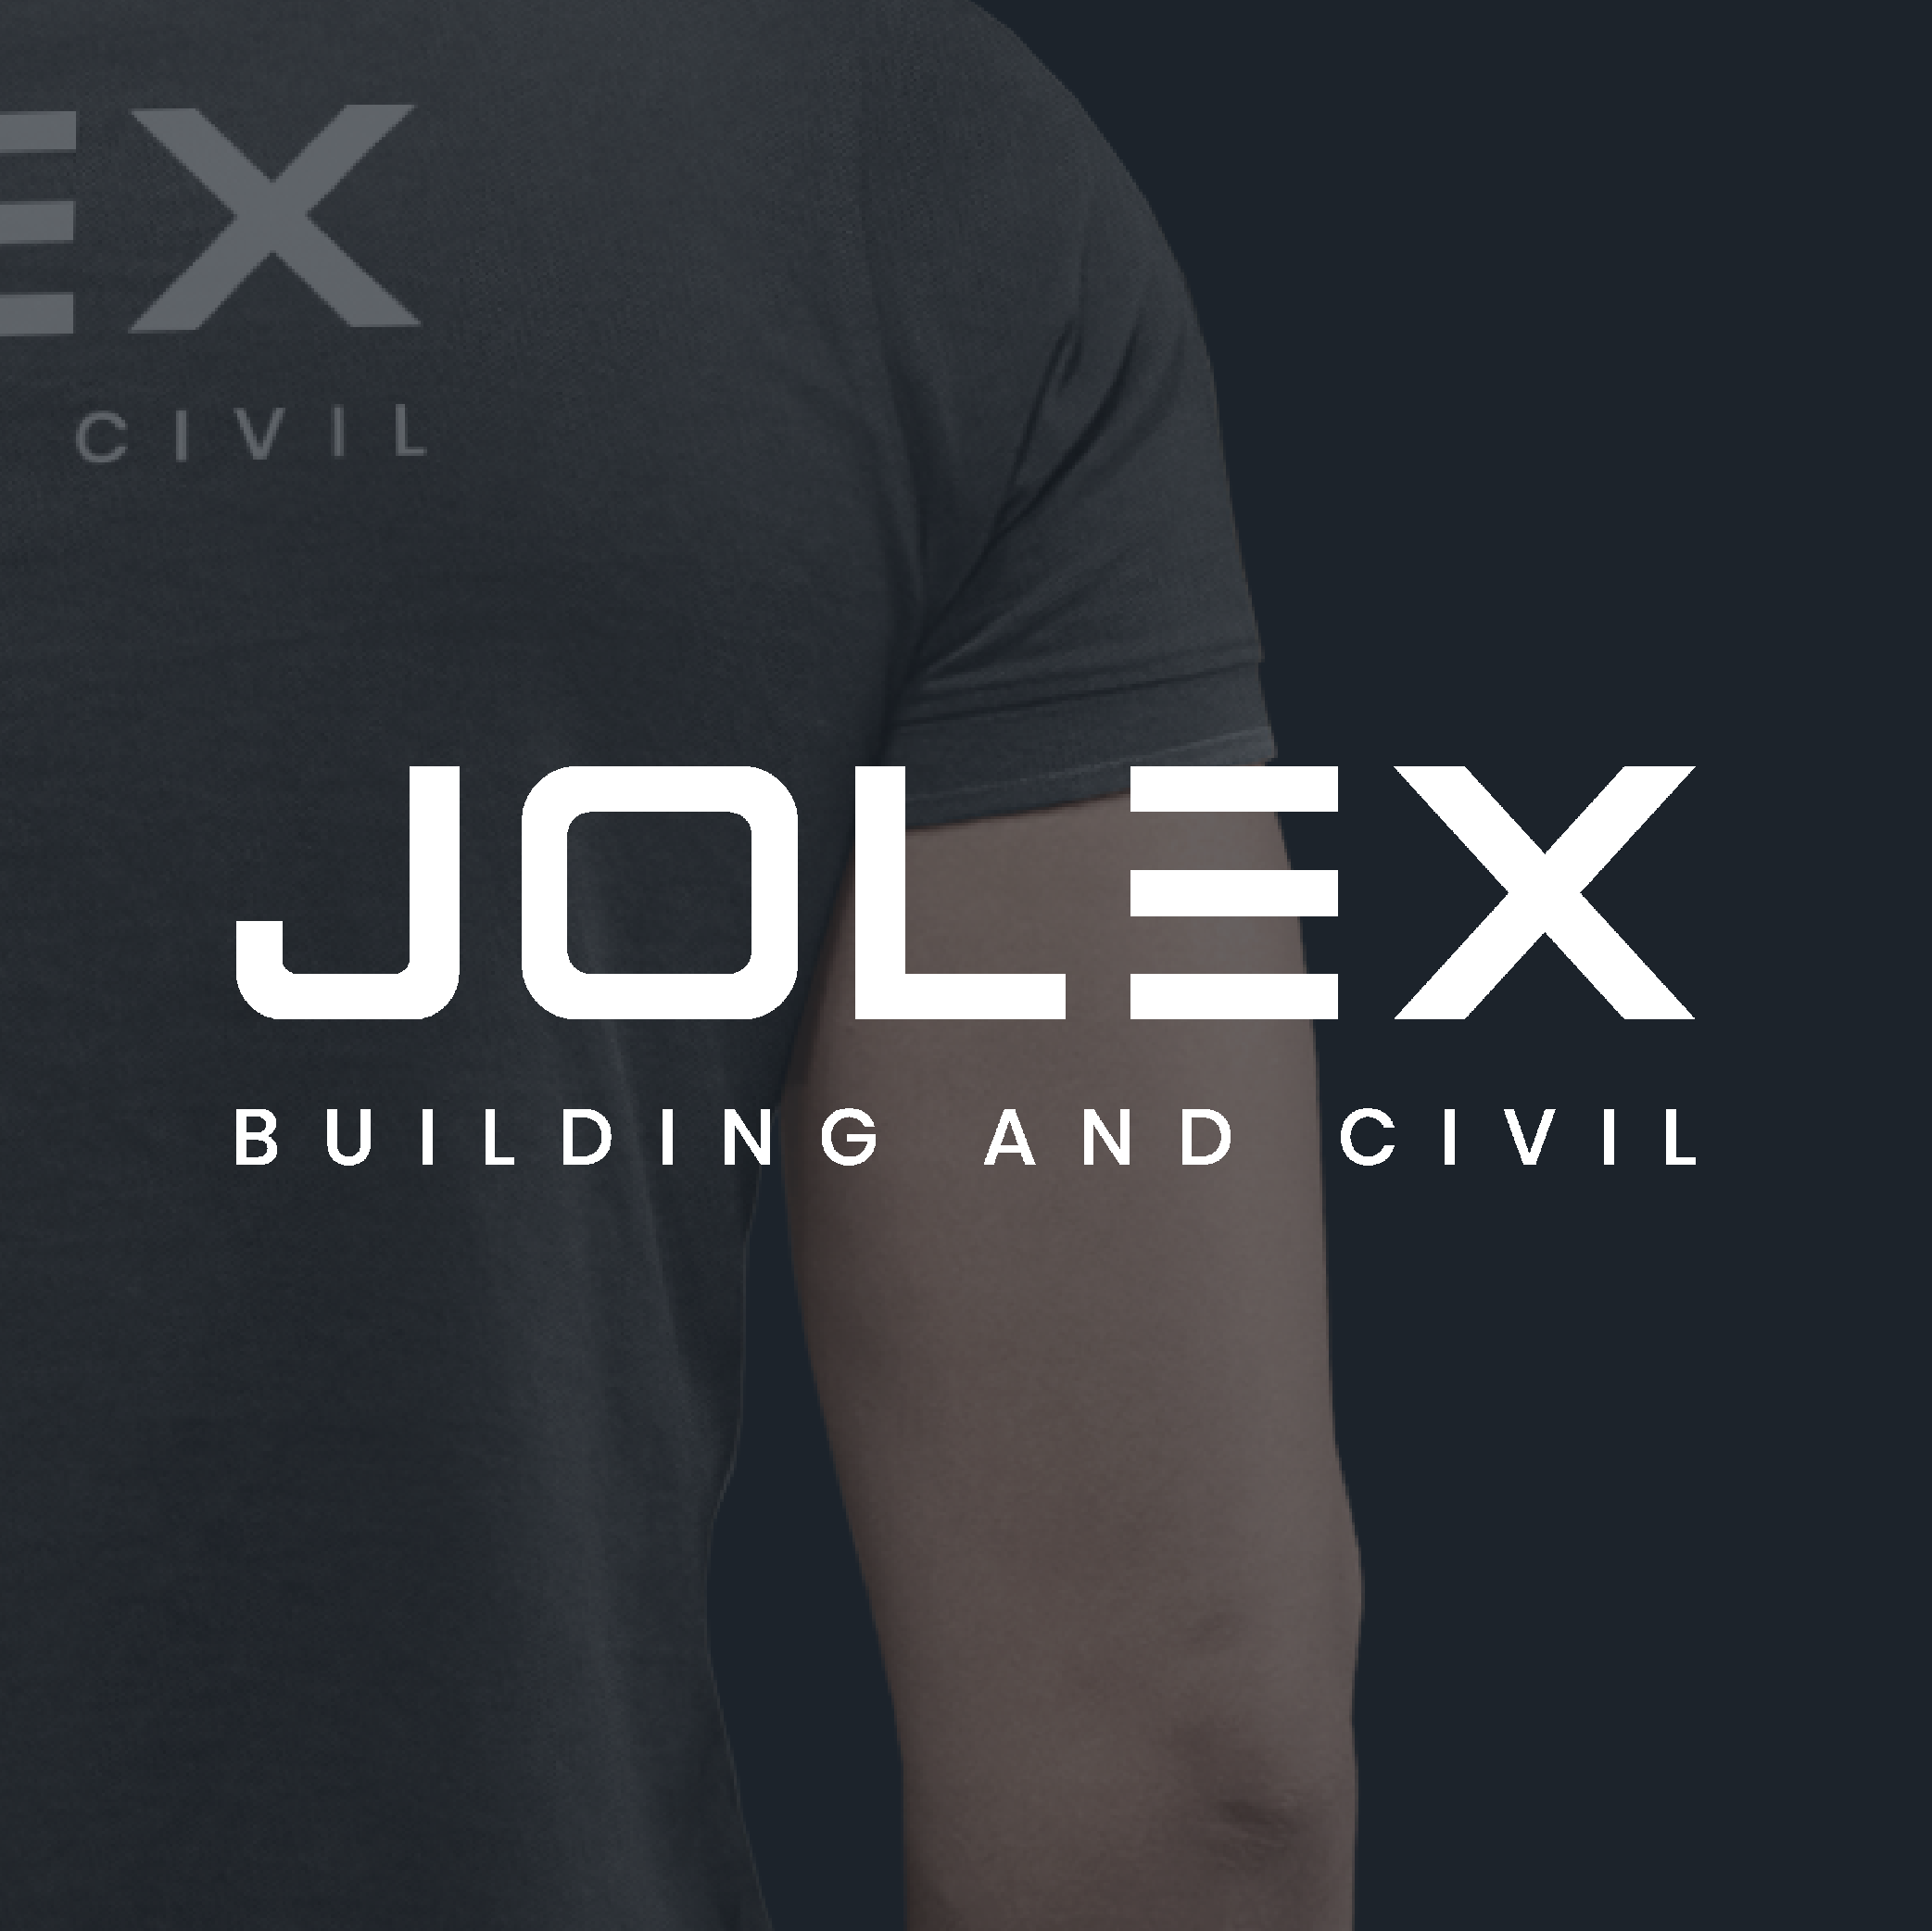 Jolex Building & Civil